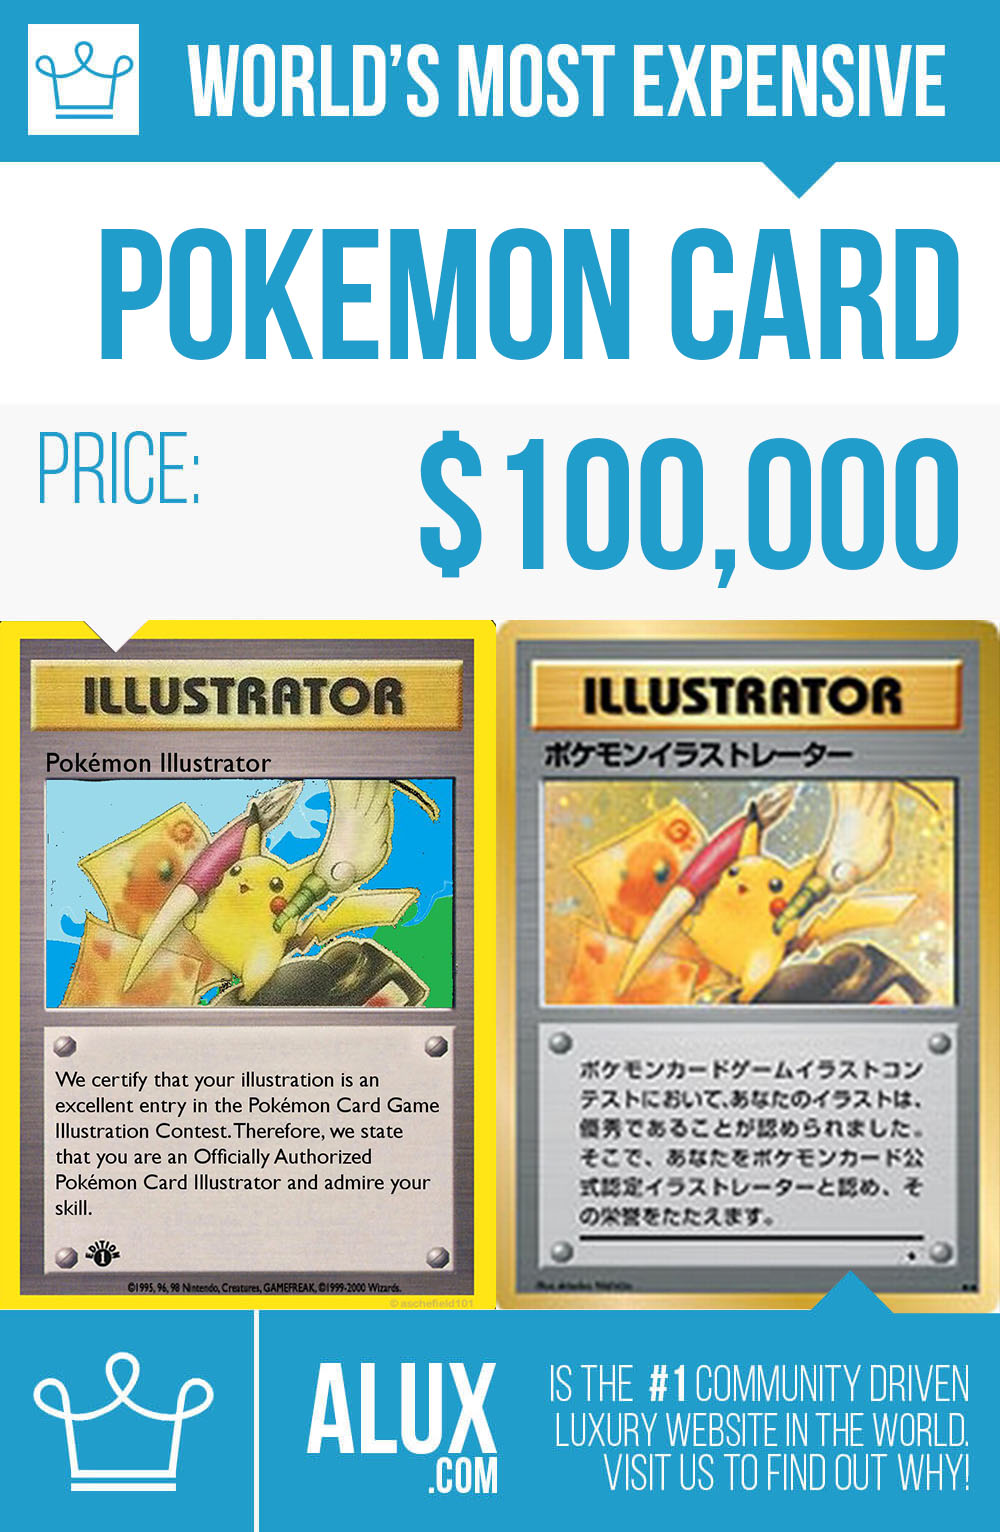 Most Expensive Rims In The World >> most expensive pokemon card in the world price by alux infographic image picture - Alux.com